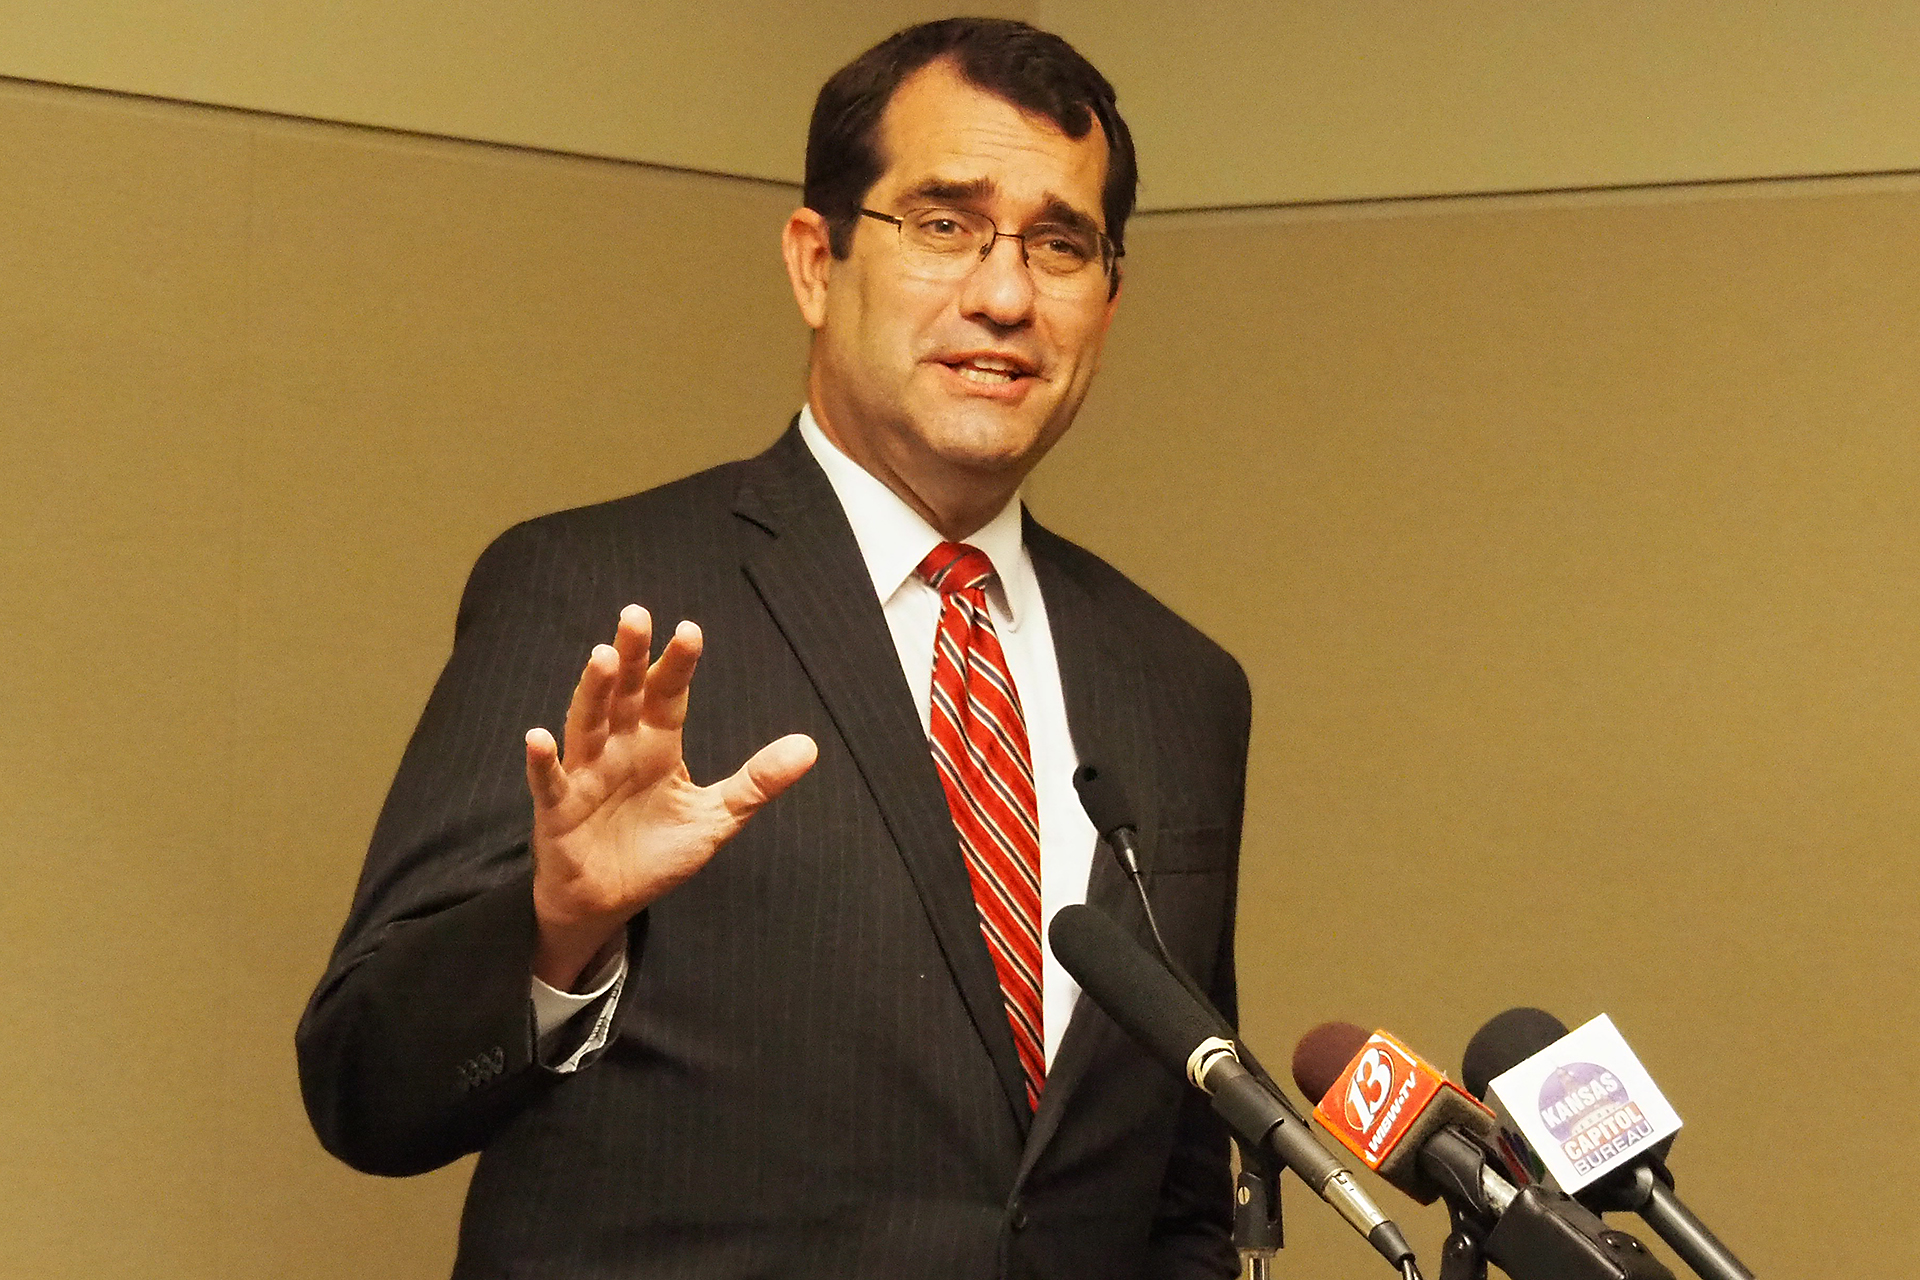 KKansas Attorney General Derek Schmidt agreed to delay Sedgwick County District Court action on a lawsuit seeking damages from the state for Gov. Laura Kelly's coronavirus shutdown orders. The pause will give the 2021 Legislature a chance to consider measures to compensate businesses. (Sherman Smith/Kansas Reflector)